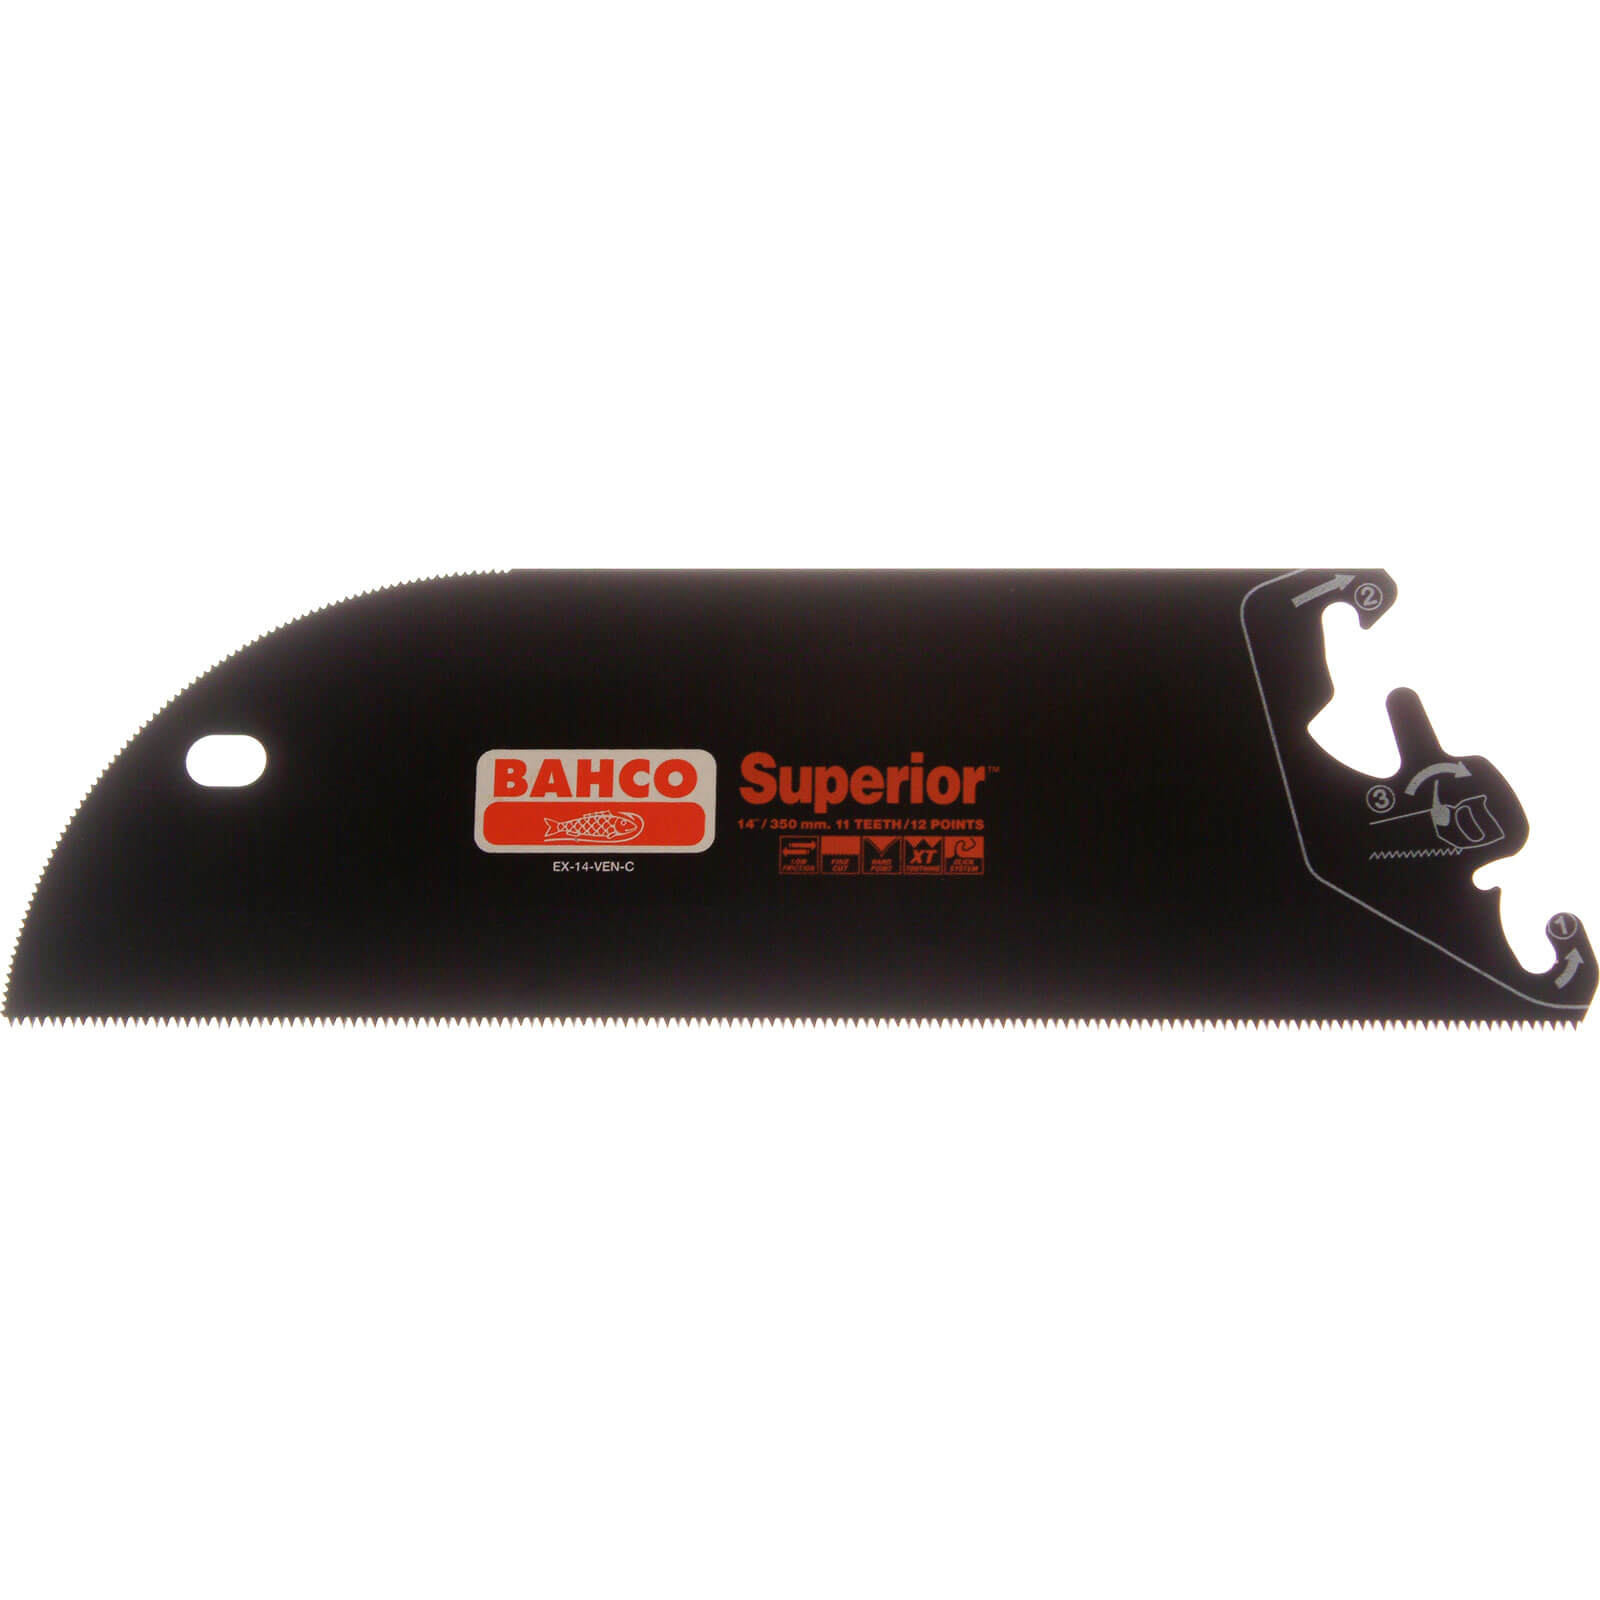 Bahco Superior Hand Saw System Veneer Saw Blade 14  350mm 11tpi